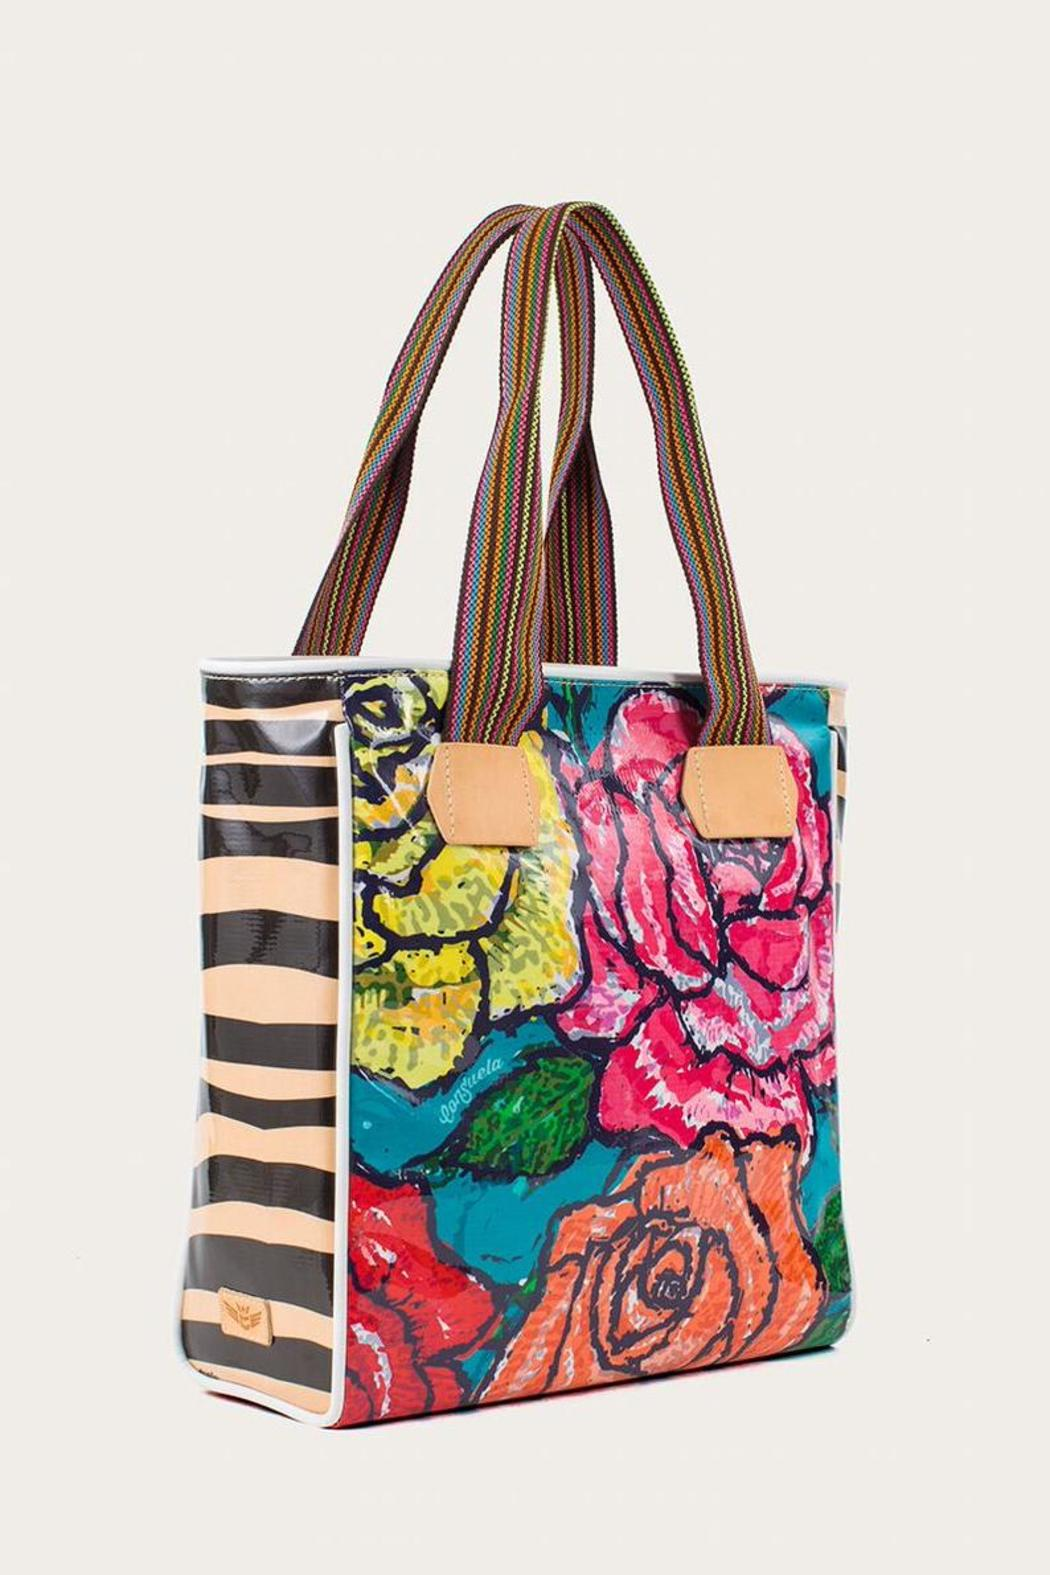 Consuela Totes Bags On Sale Sema Data Co Op